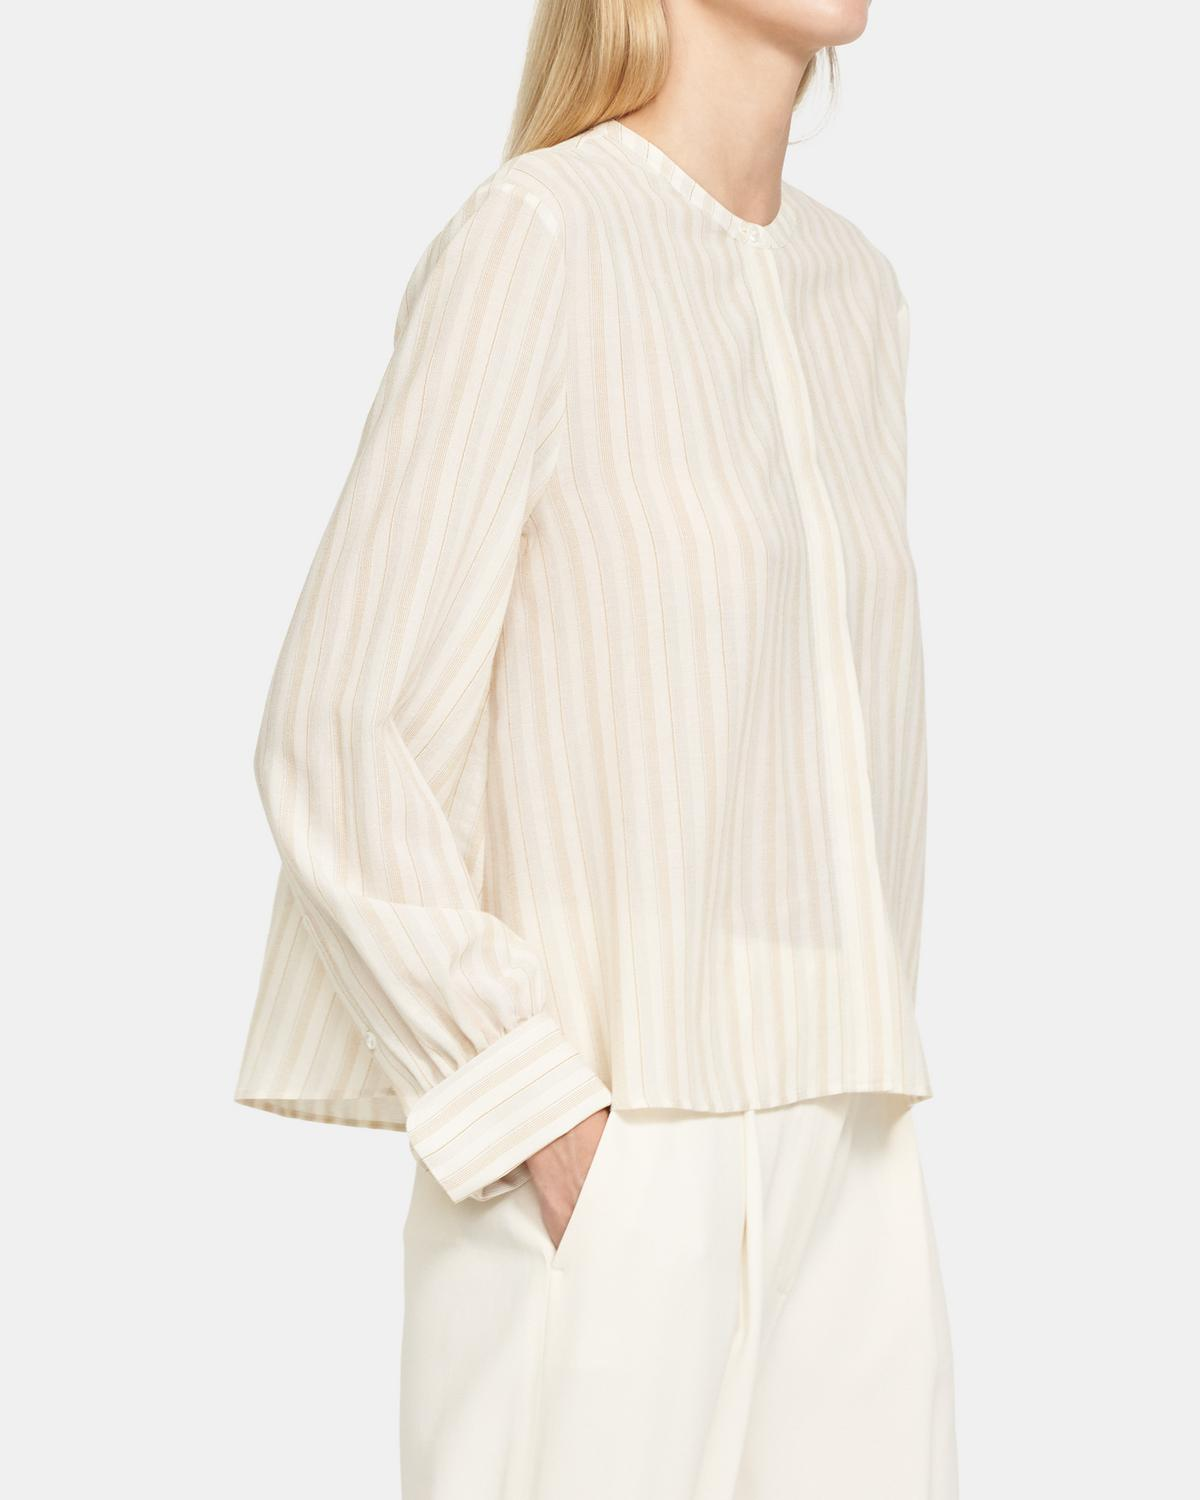 Easy Shirt in Corded Viscose-Cotton 0 - click to view larger image